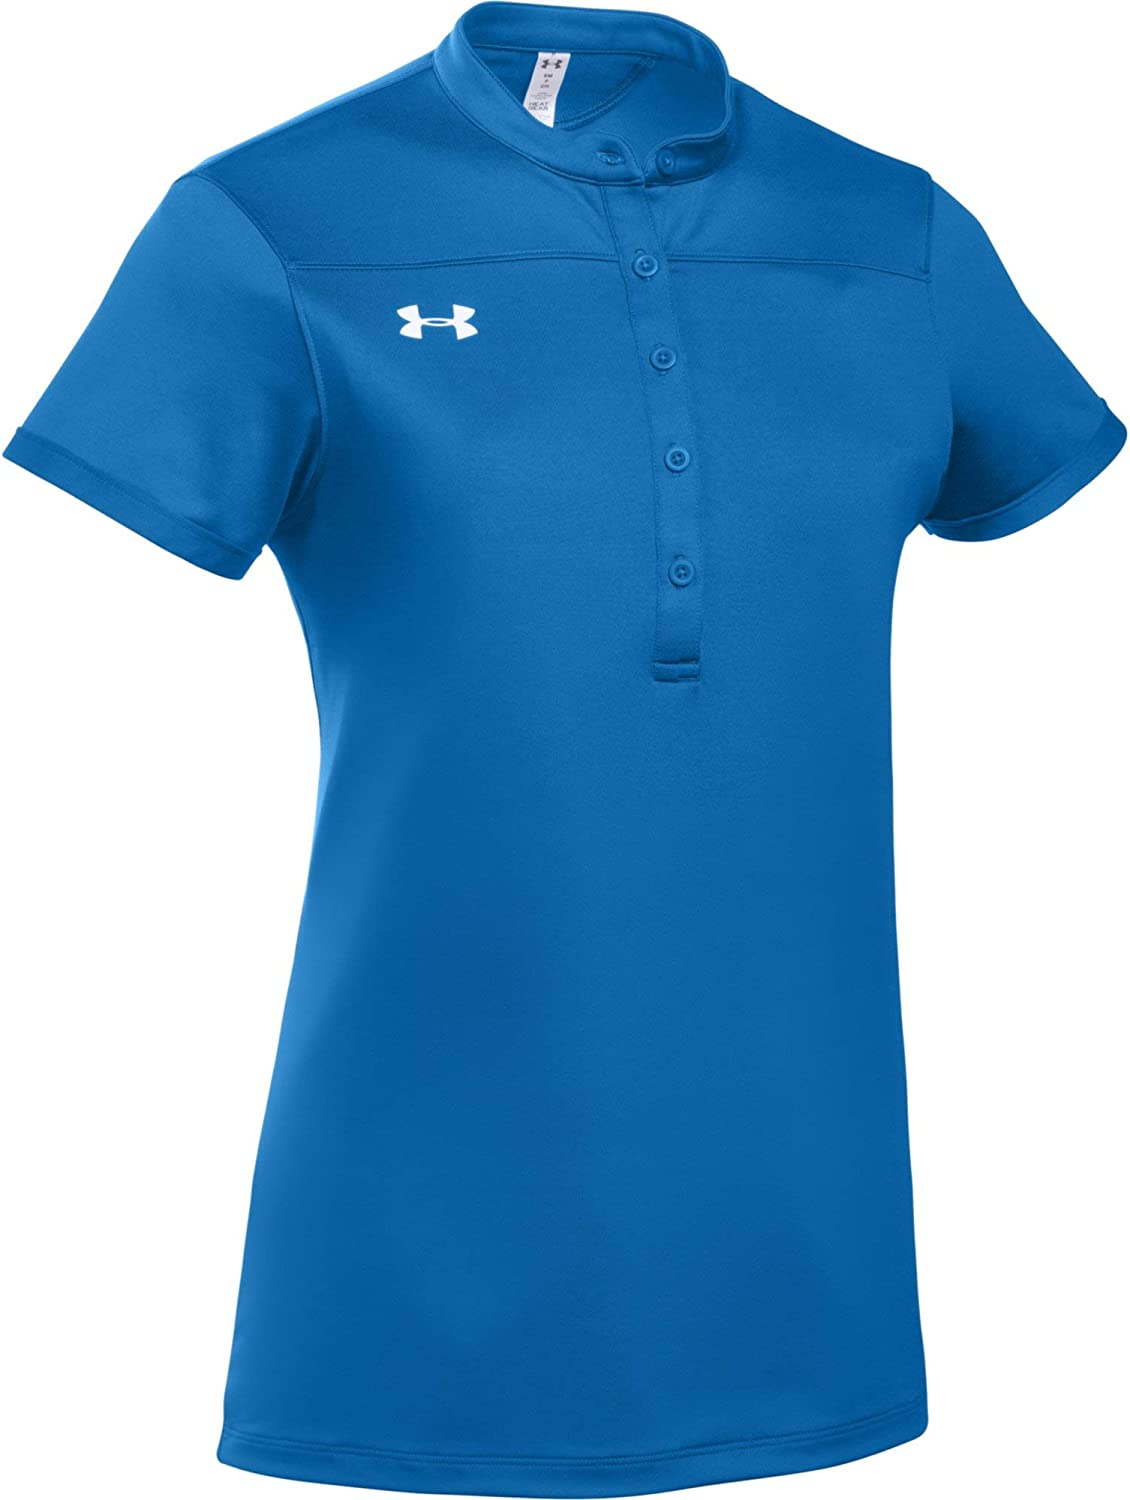 Under Armour Womens Team Drape Polo Shirt